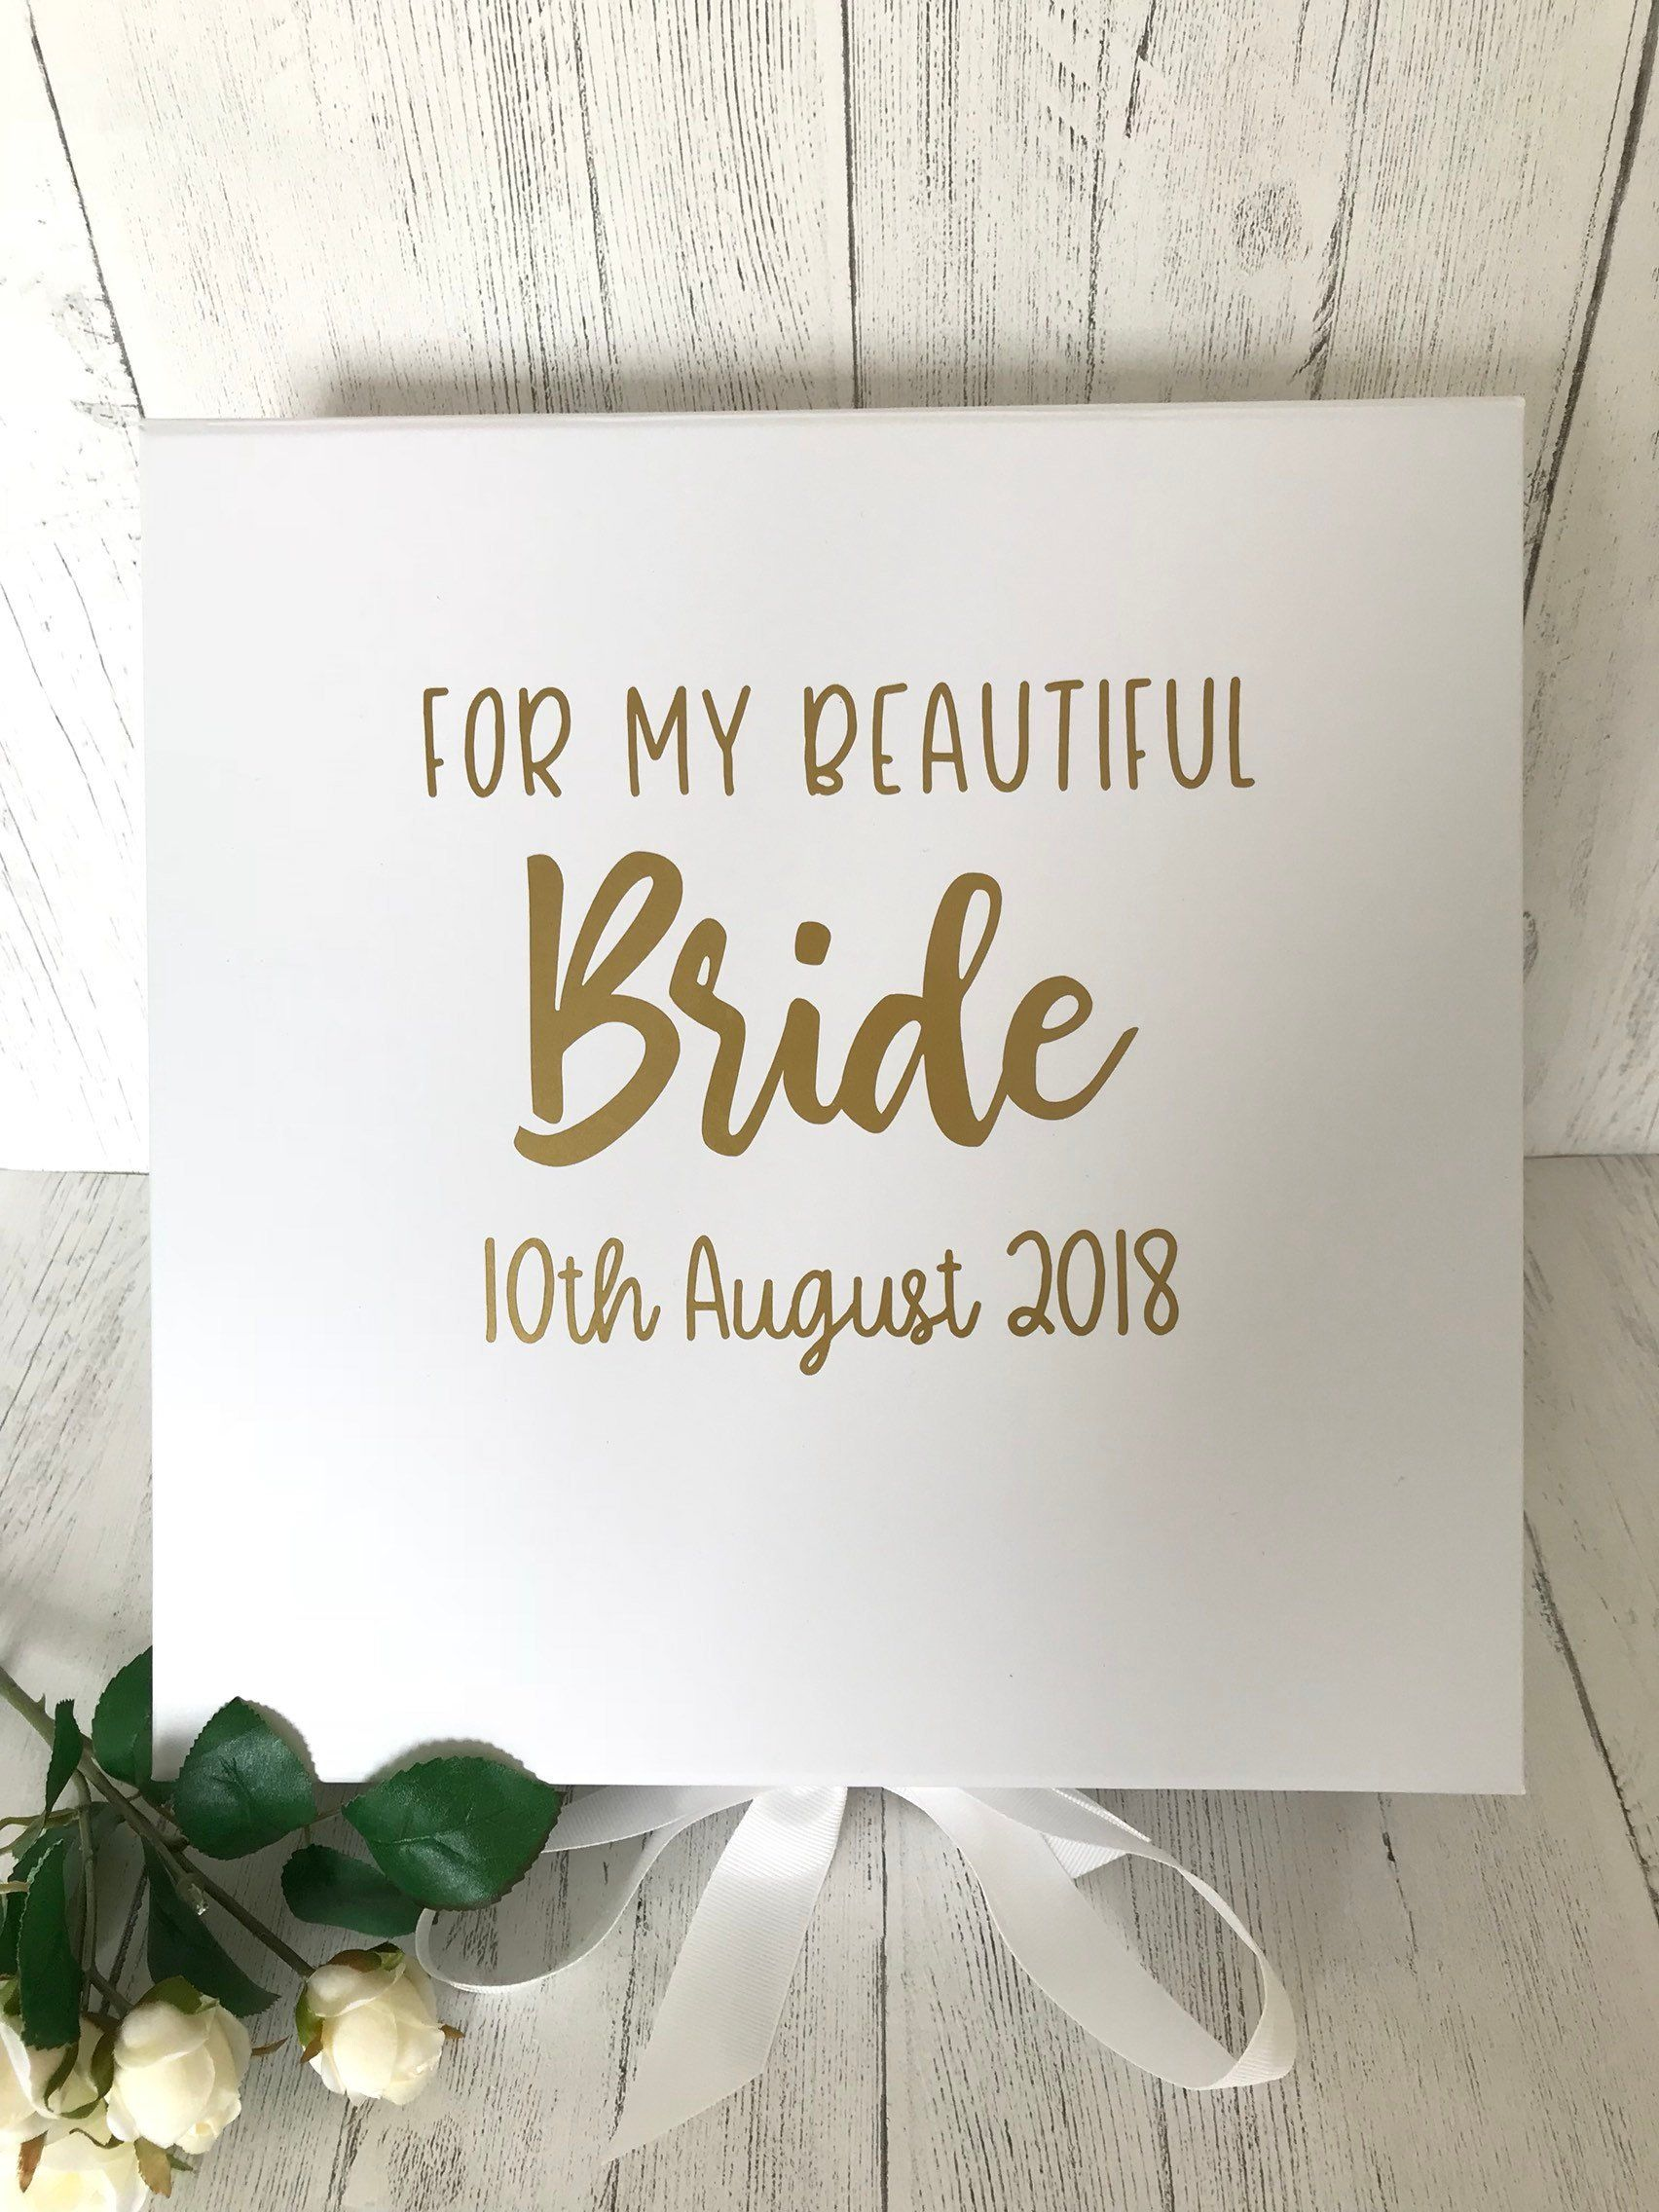 Bride S Box Wedding Day Gift For Bride From Groom Gift Box For Bride Personalised Gift Personalised Box Wedding Morning Gift Personalized Wedding Gifts Wedding Day Gifts Bride Gifts